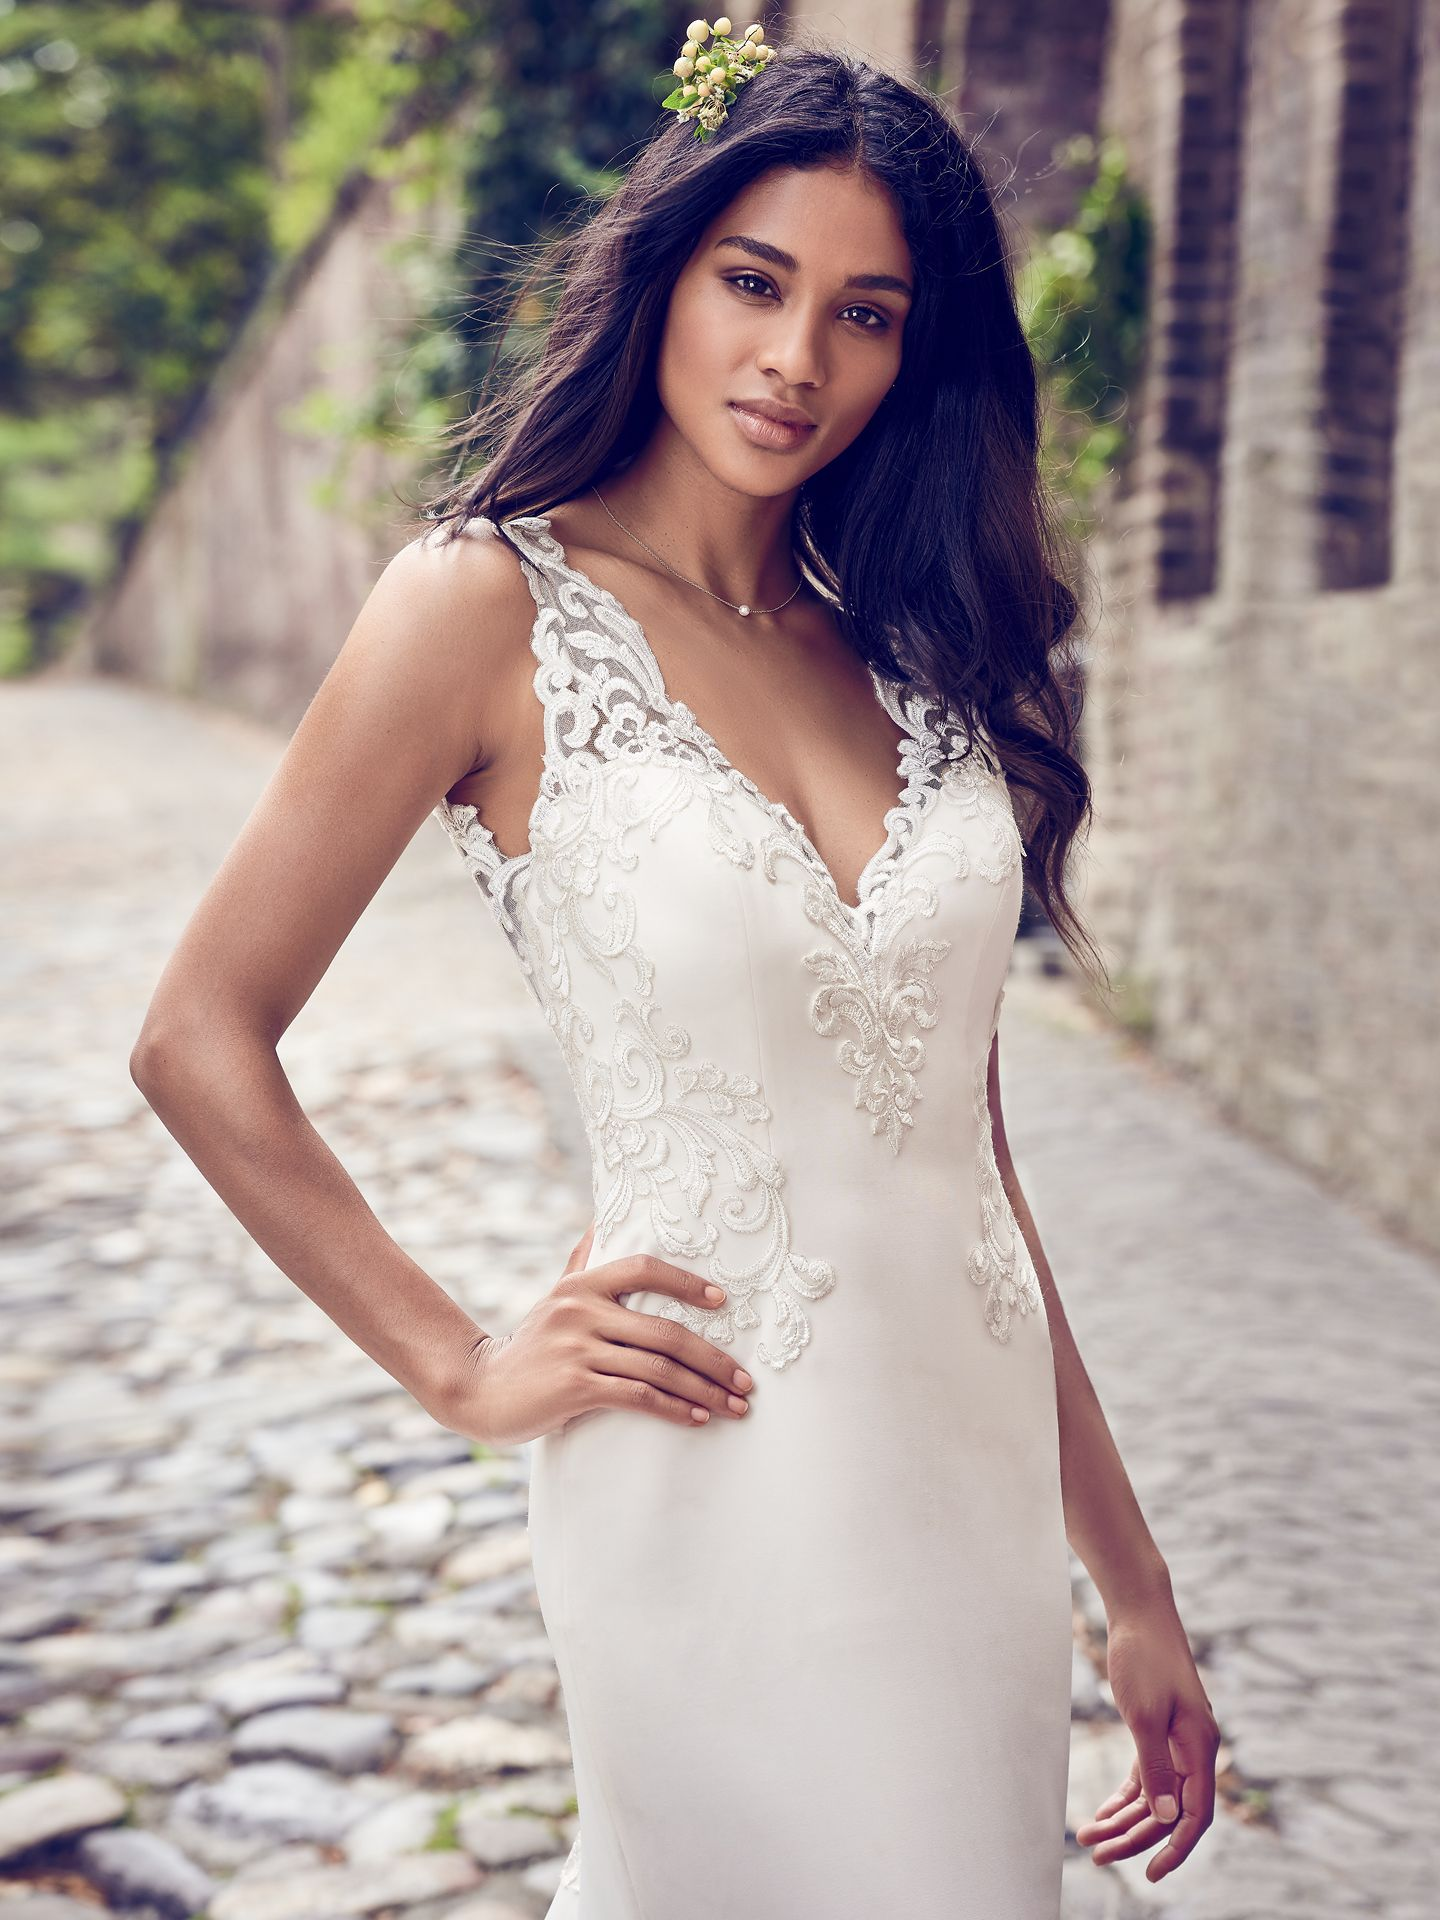 Veronica wedding dress for boho muse—a modern and feminine slip style. - The Latest Wedding Dress Trends for Engagement Season 2018